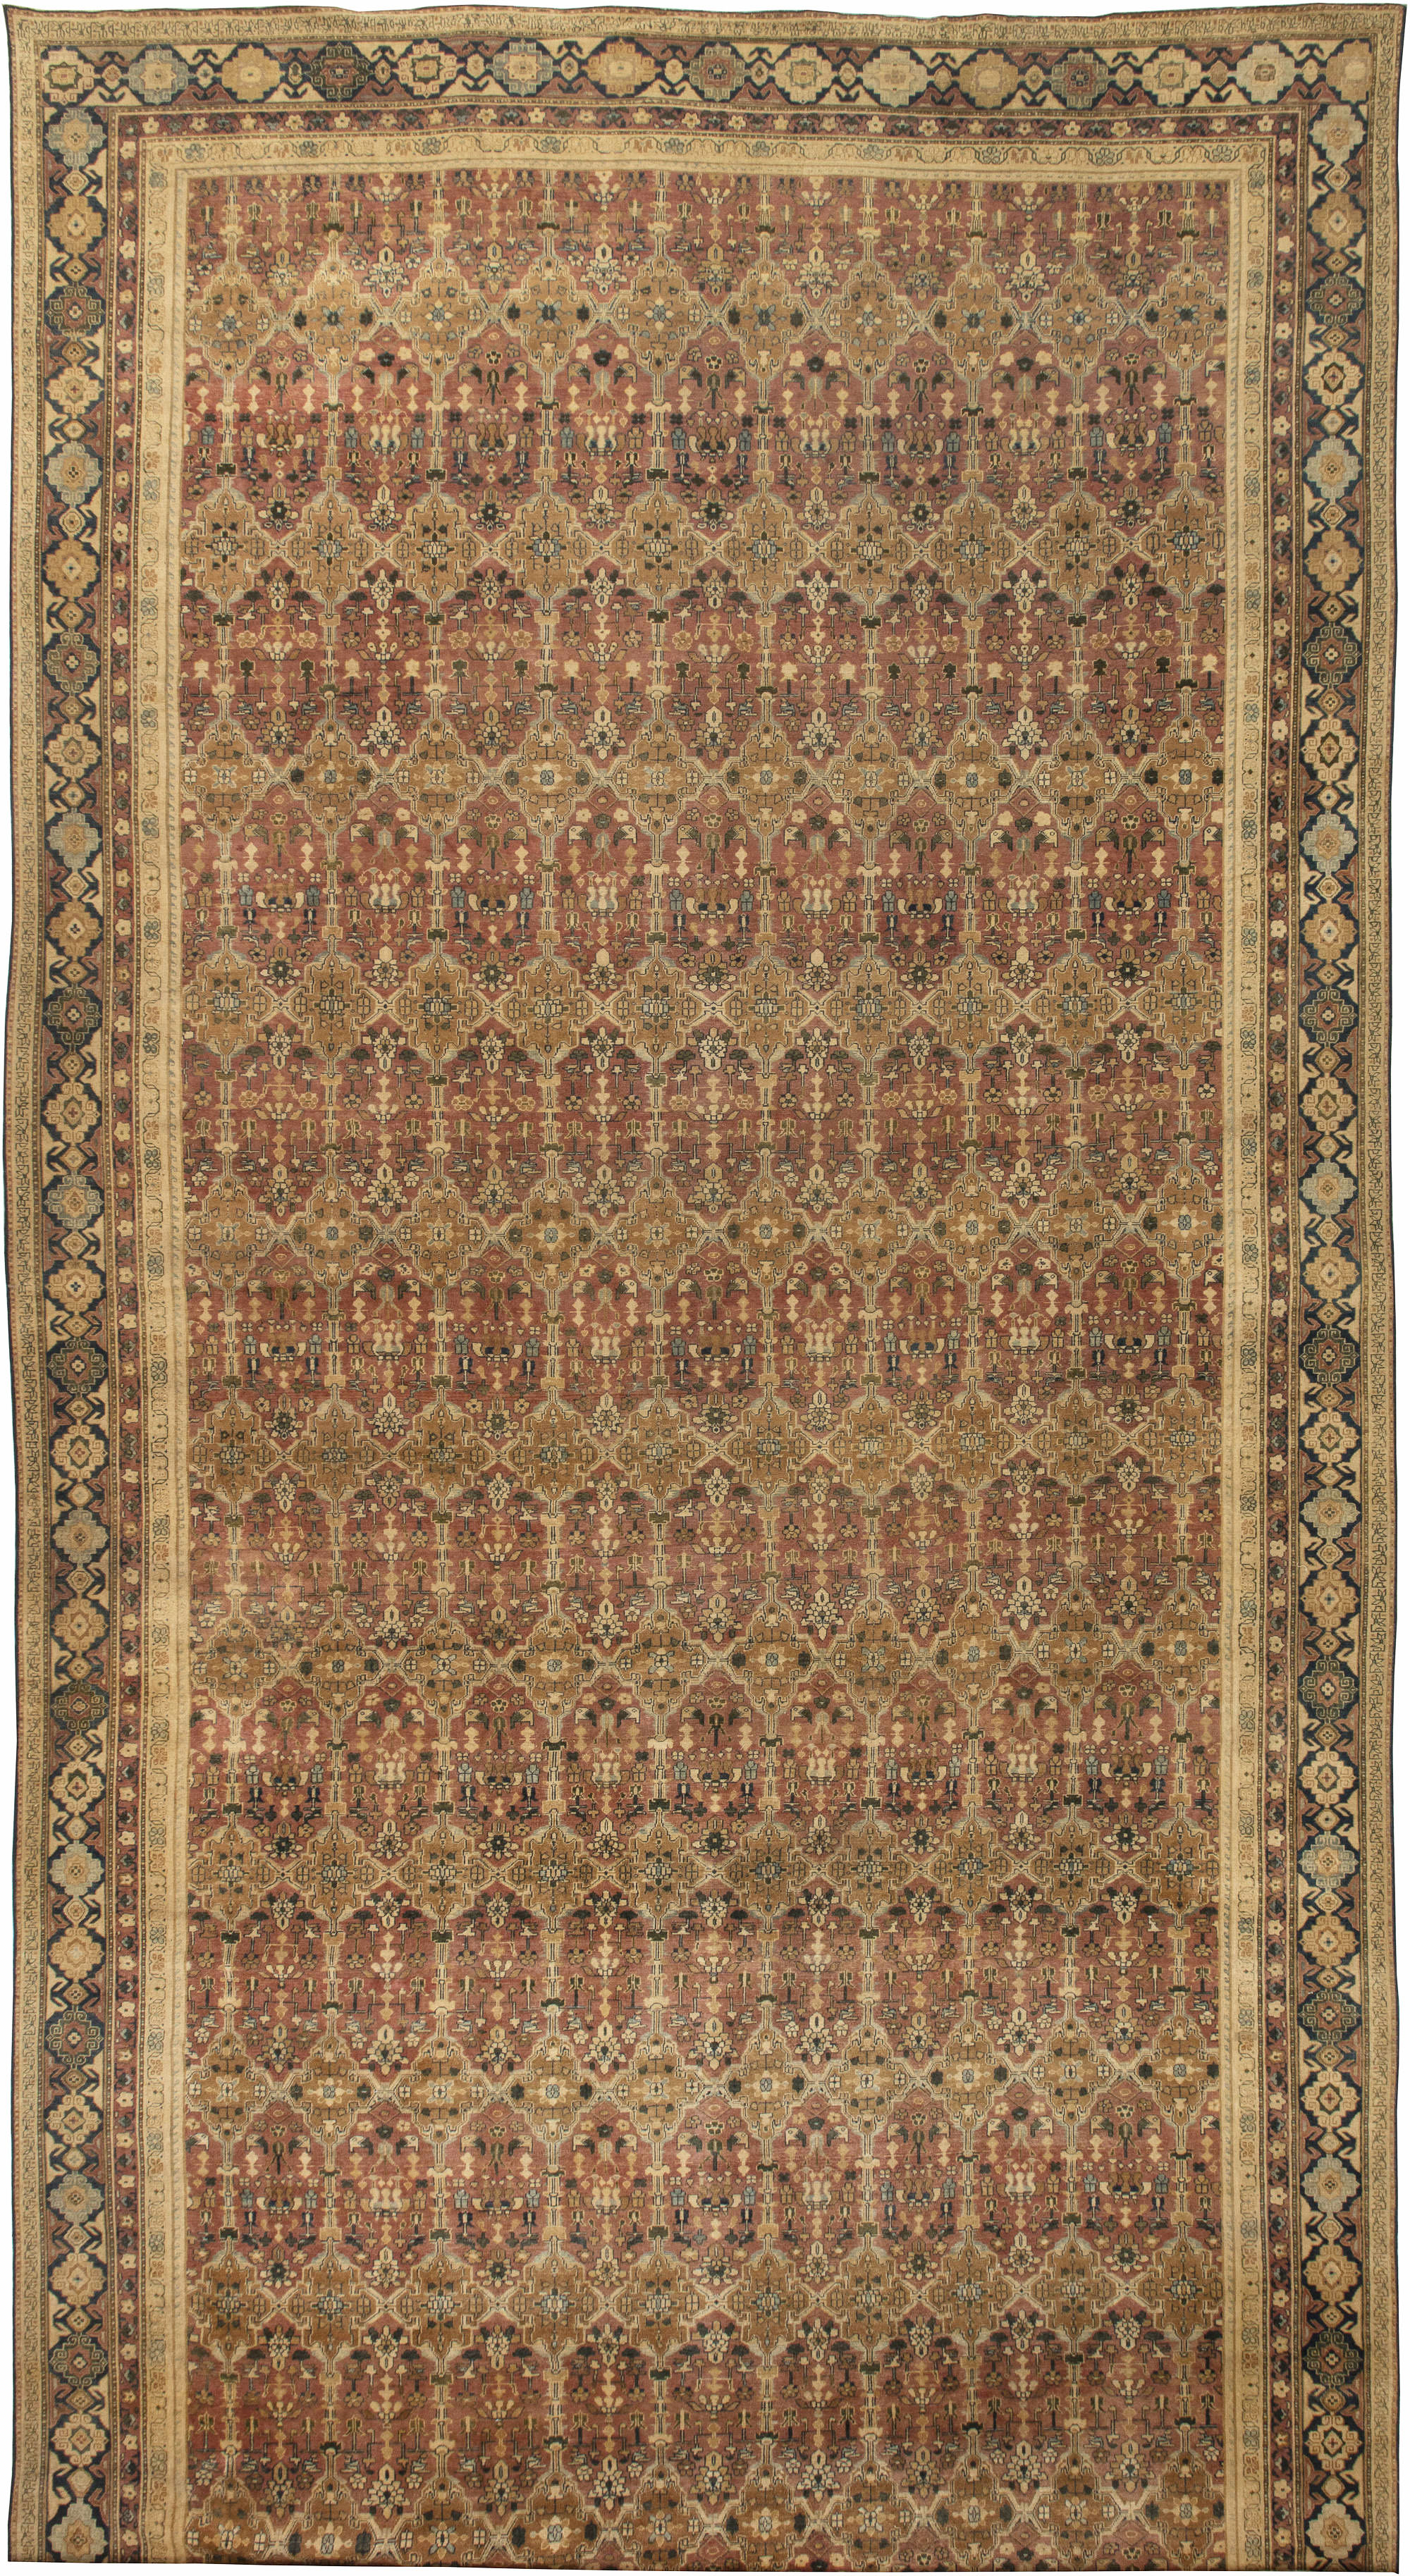 Antique Indian Carpet BB4463